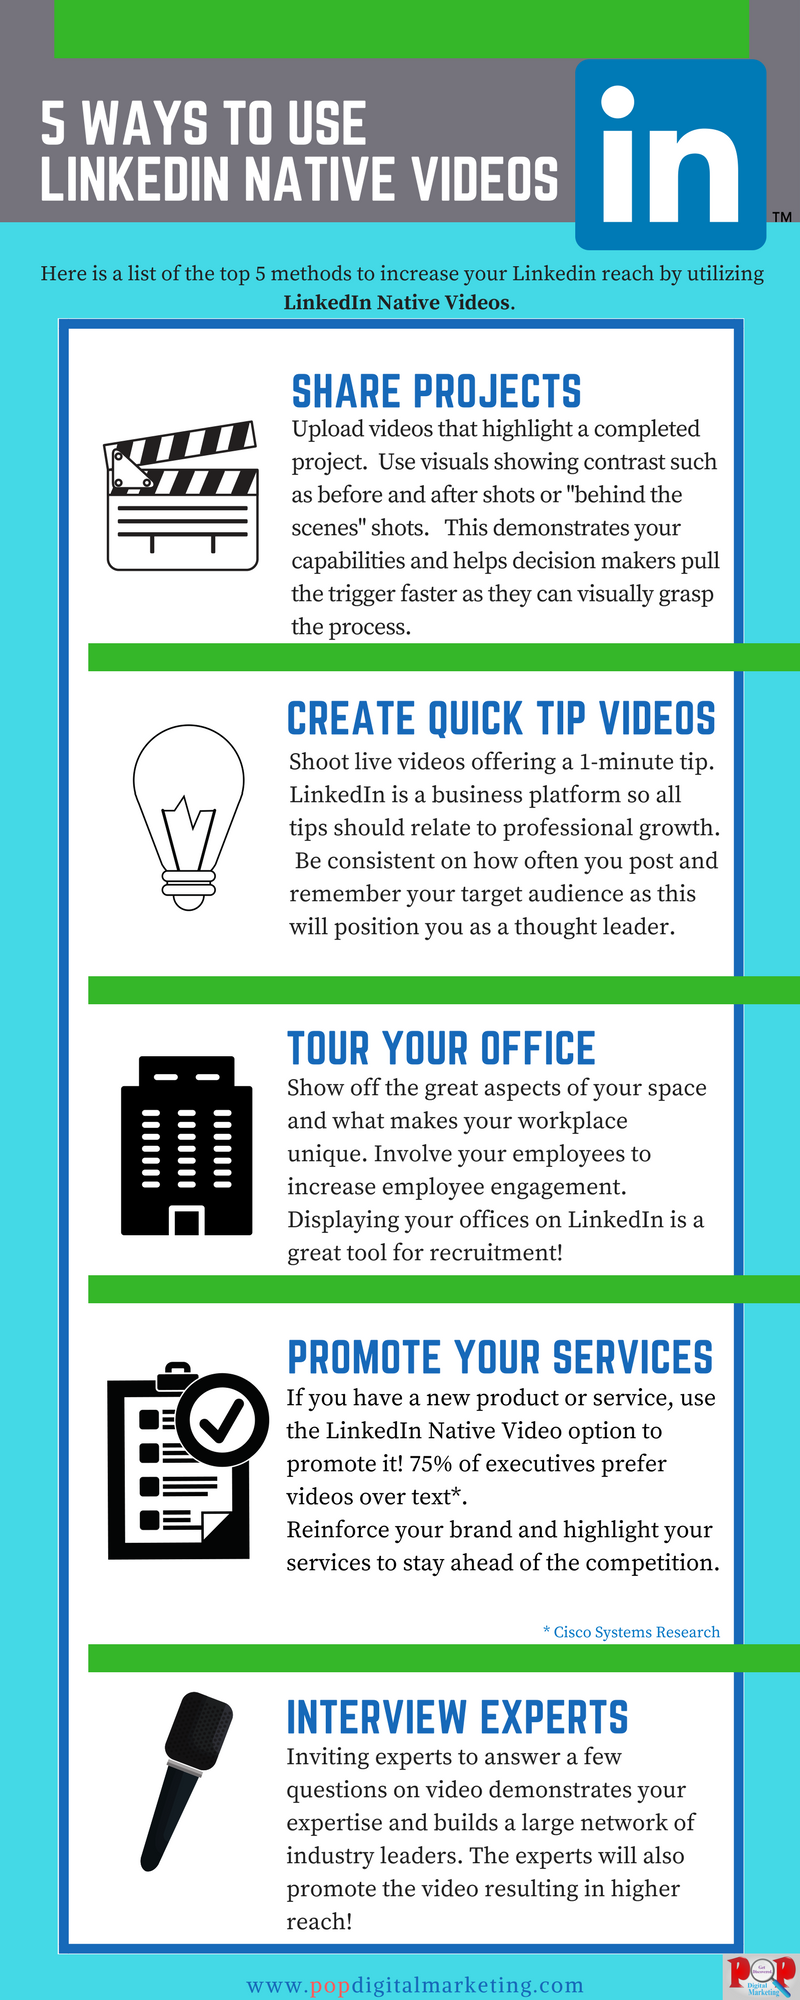 5 Ways To Use LinkedIn Native Videos | Infographic